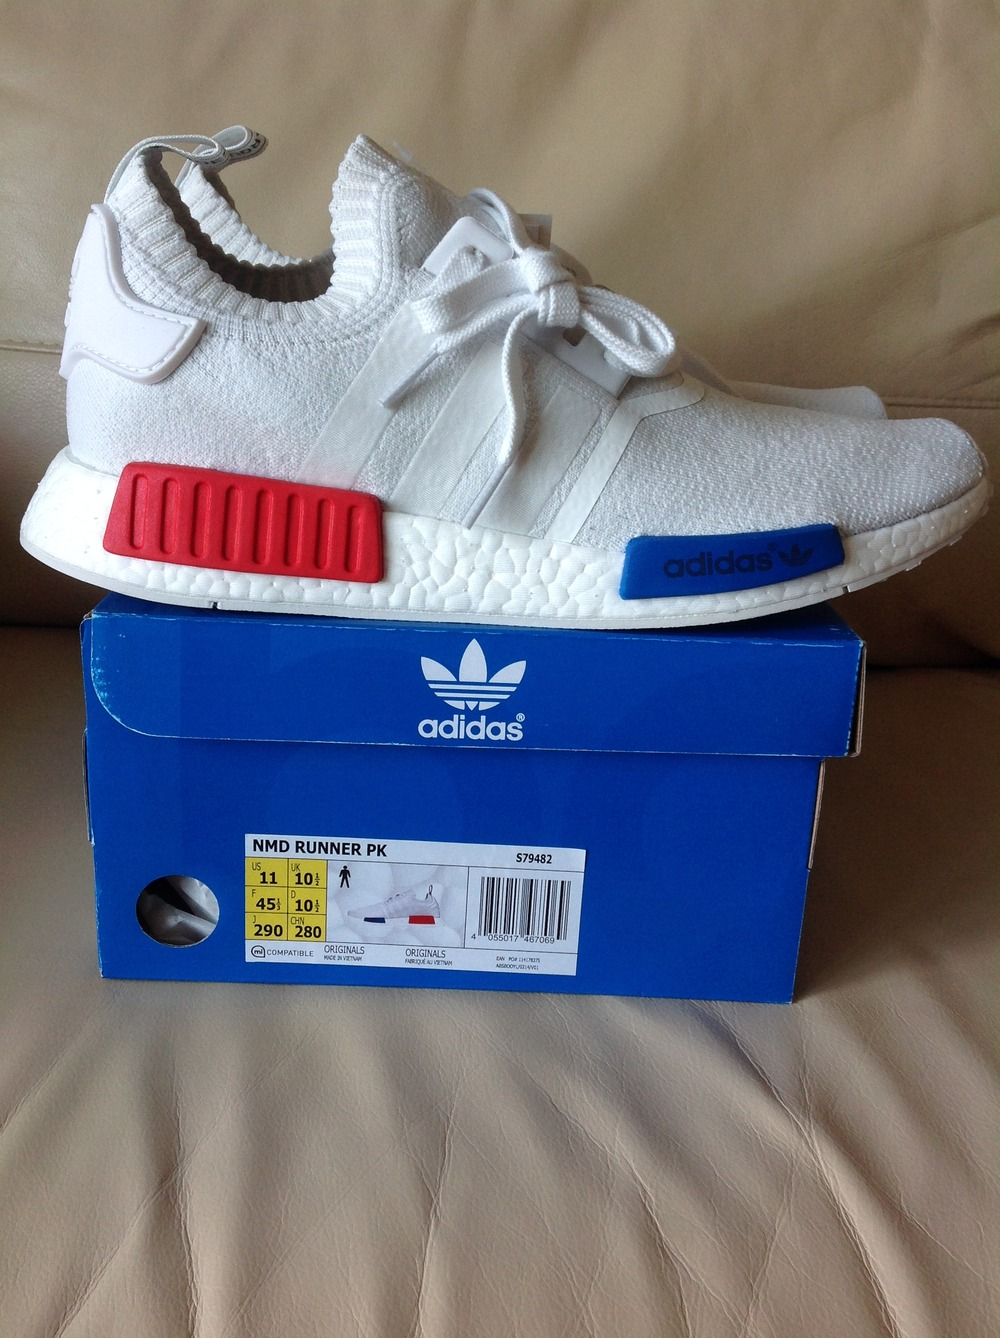 Adidas NMD R1 Primeknit White and Gum Loose Cannon Flagship